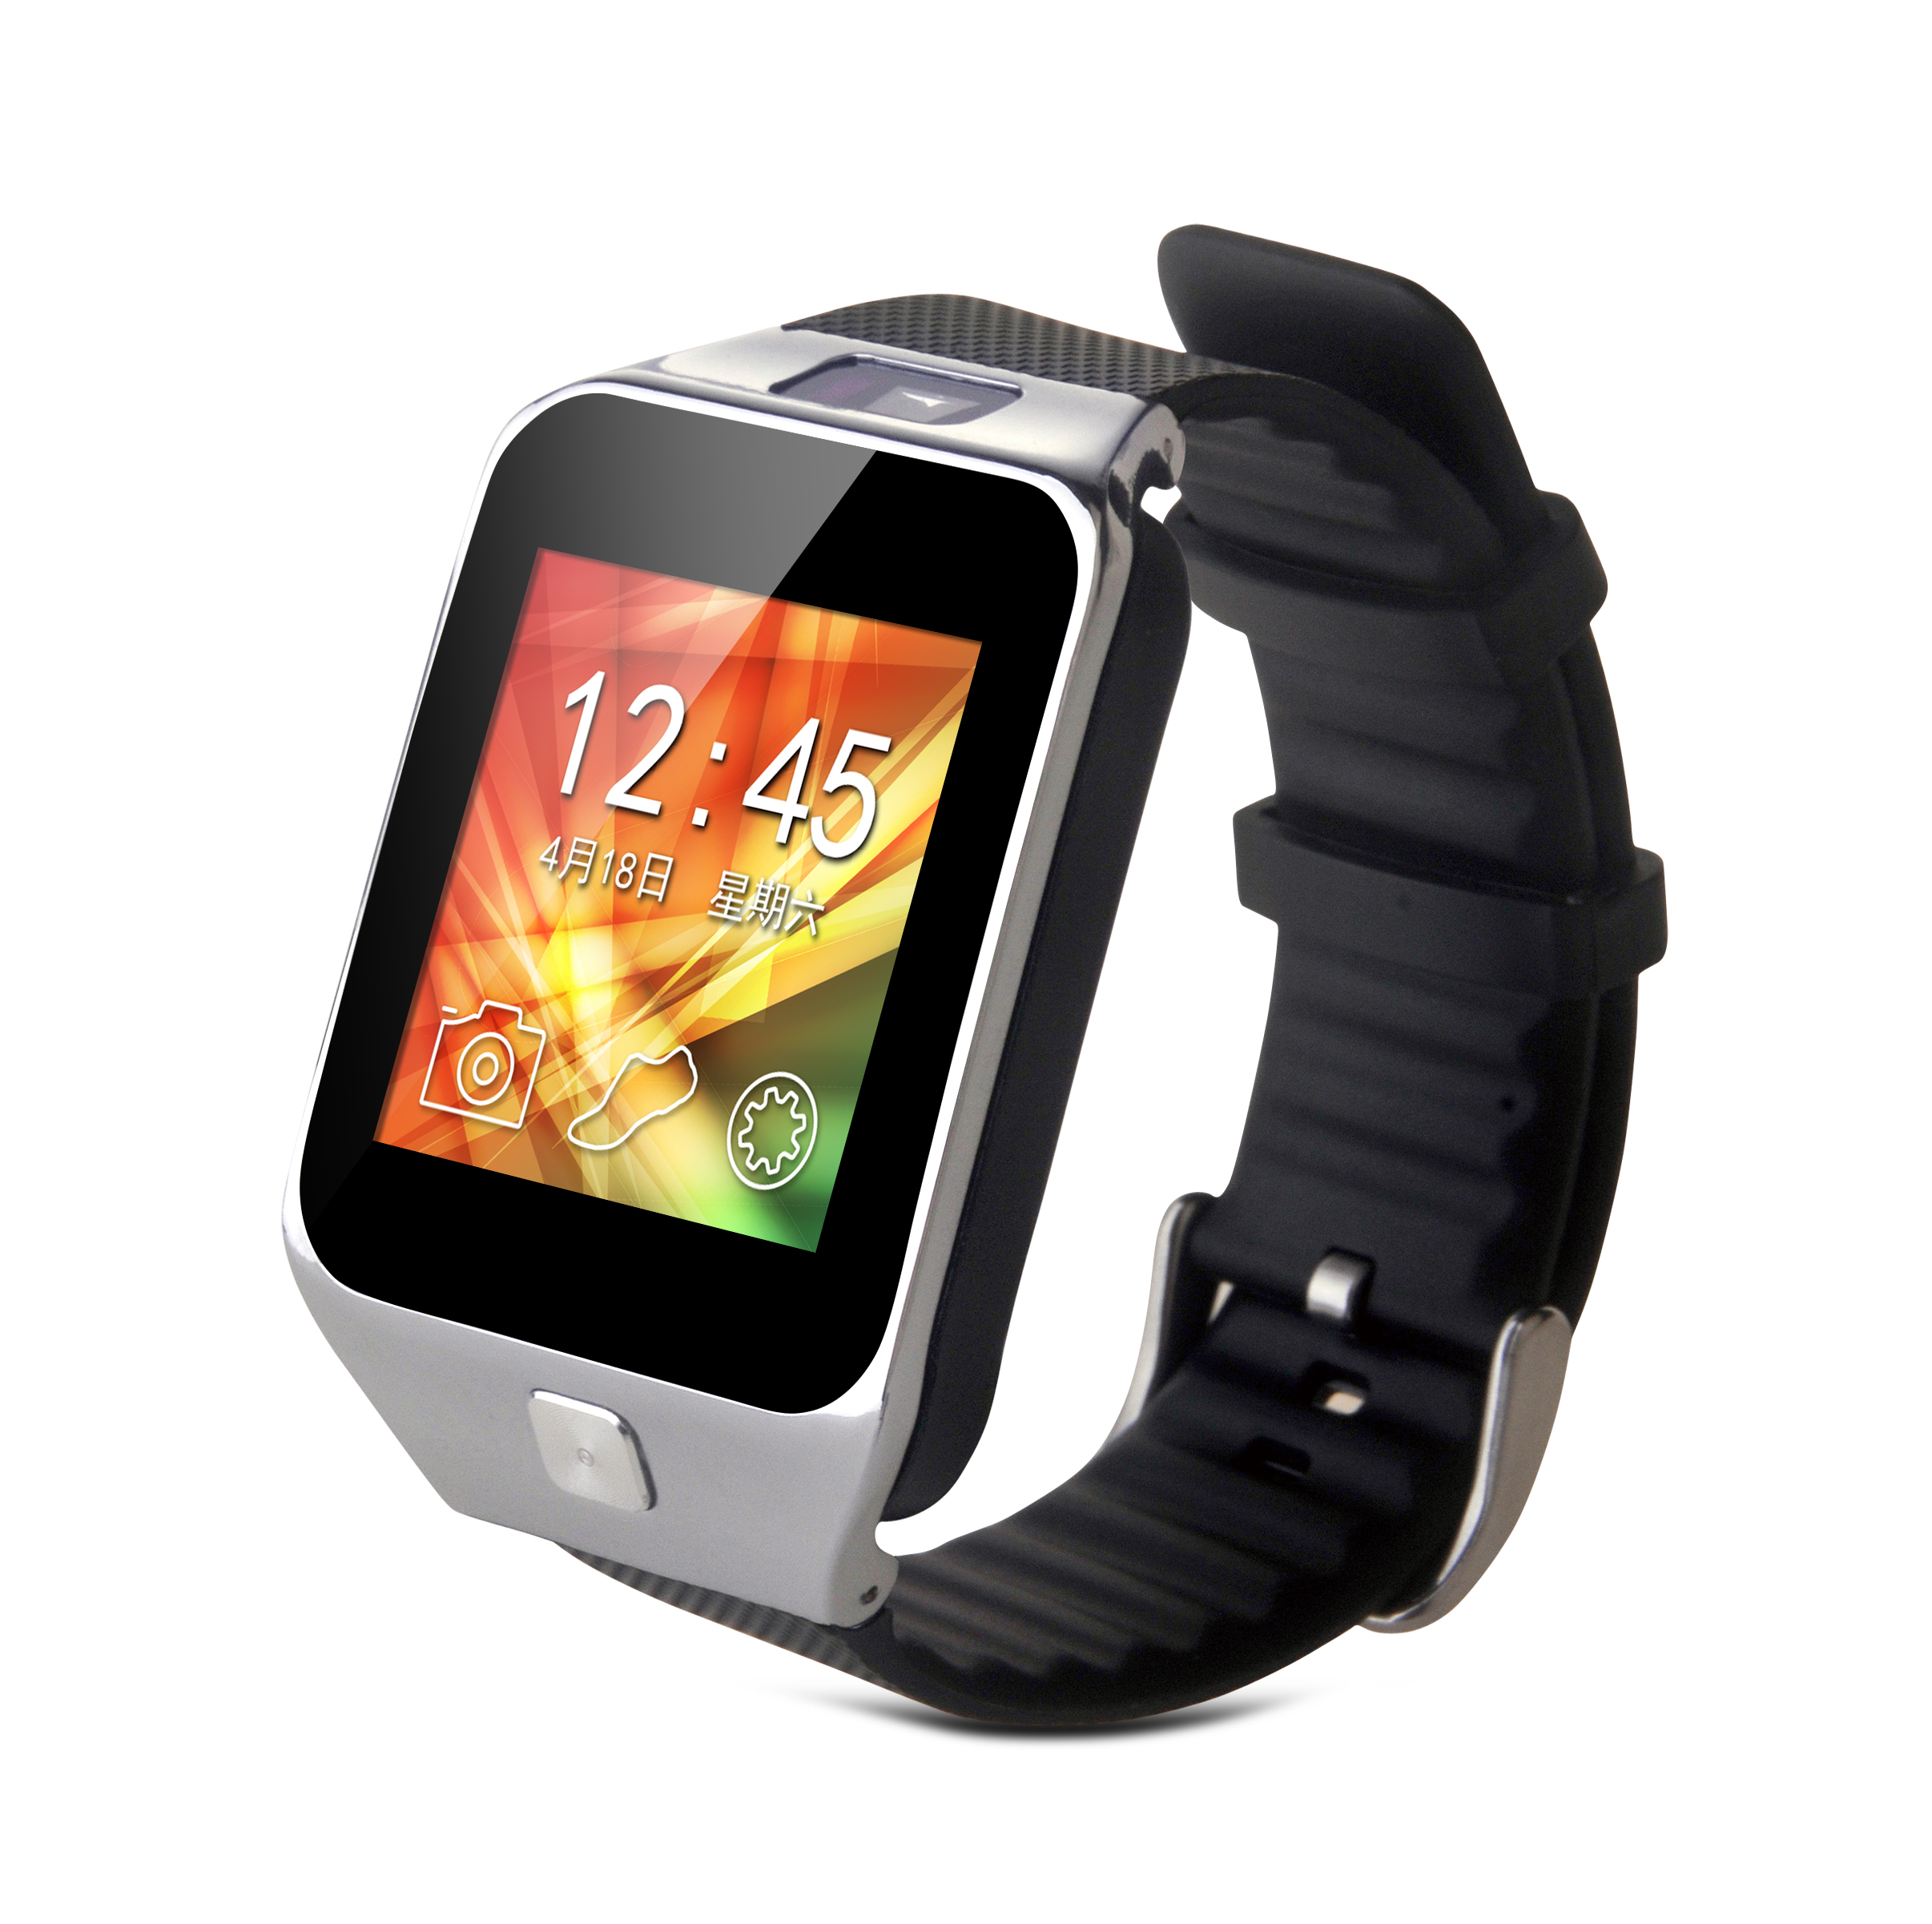 SW29 1 54 font b Smartwatch b font Phone MTK6260A with Pedometer Sleep Monitor Sedentary Smart